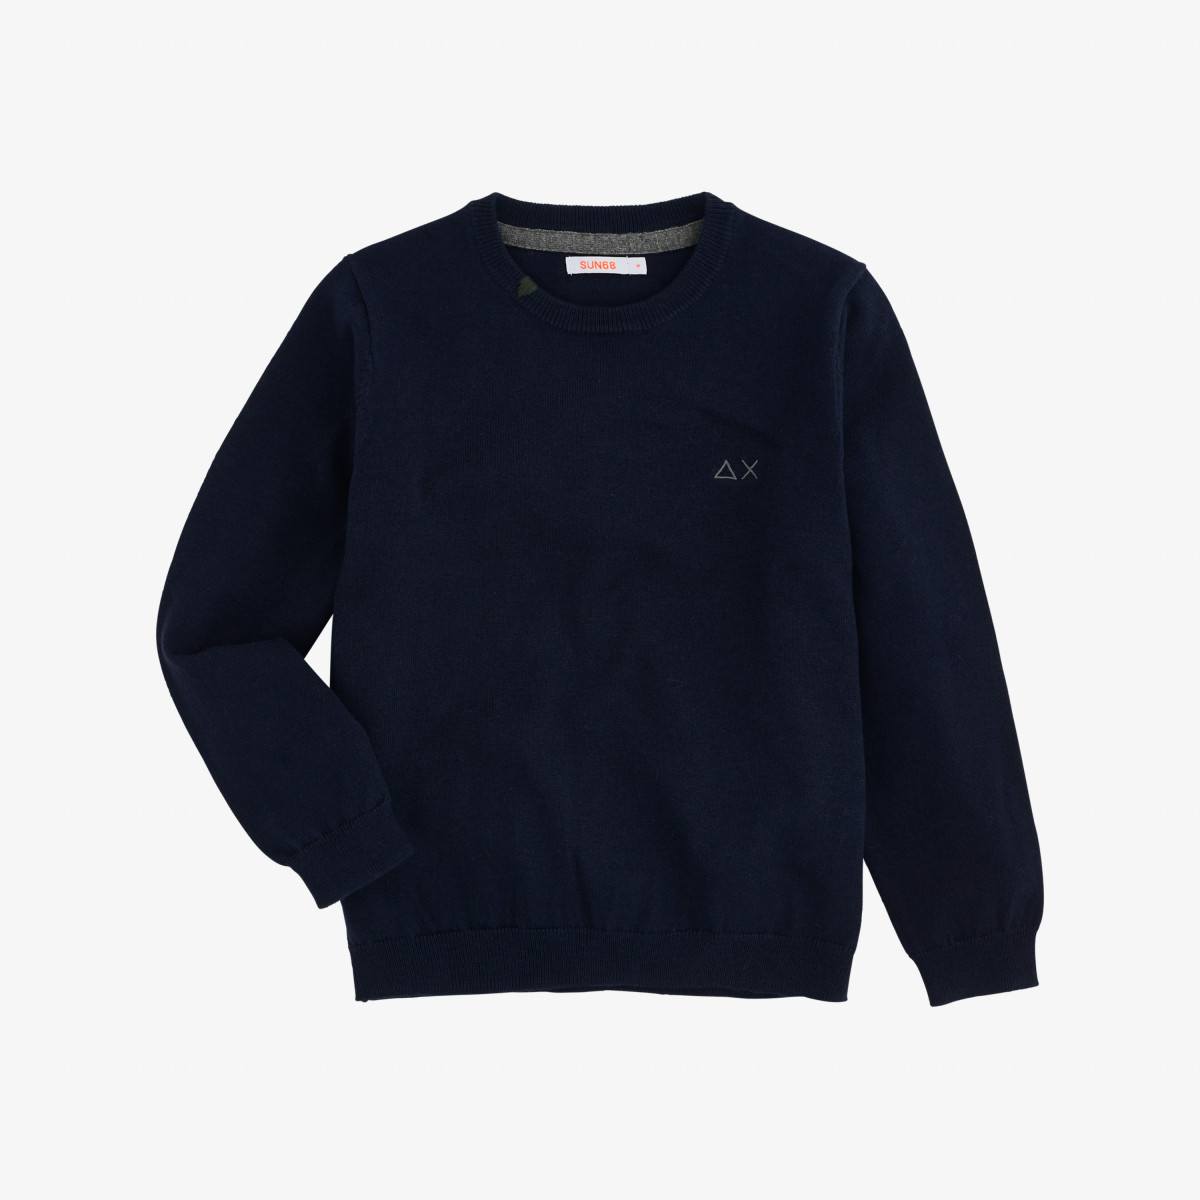 BOY'S ROUND NECK SOLID NAVY BLUE